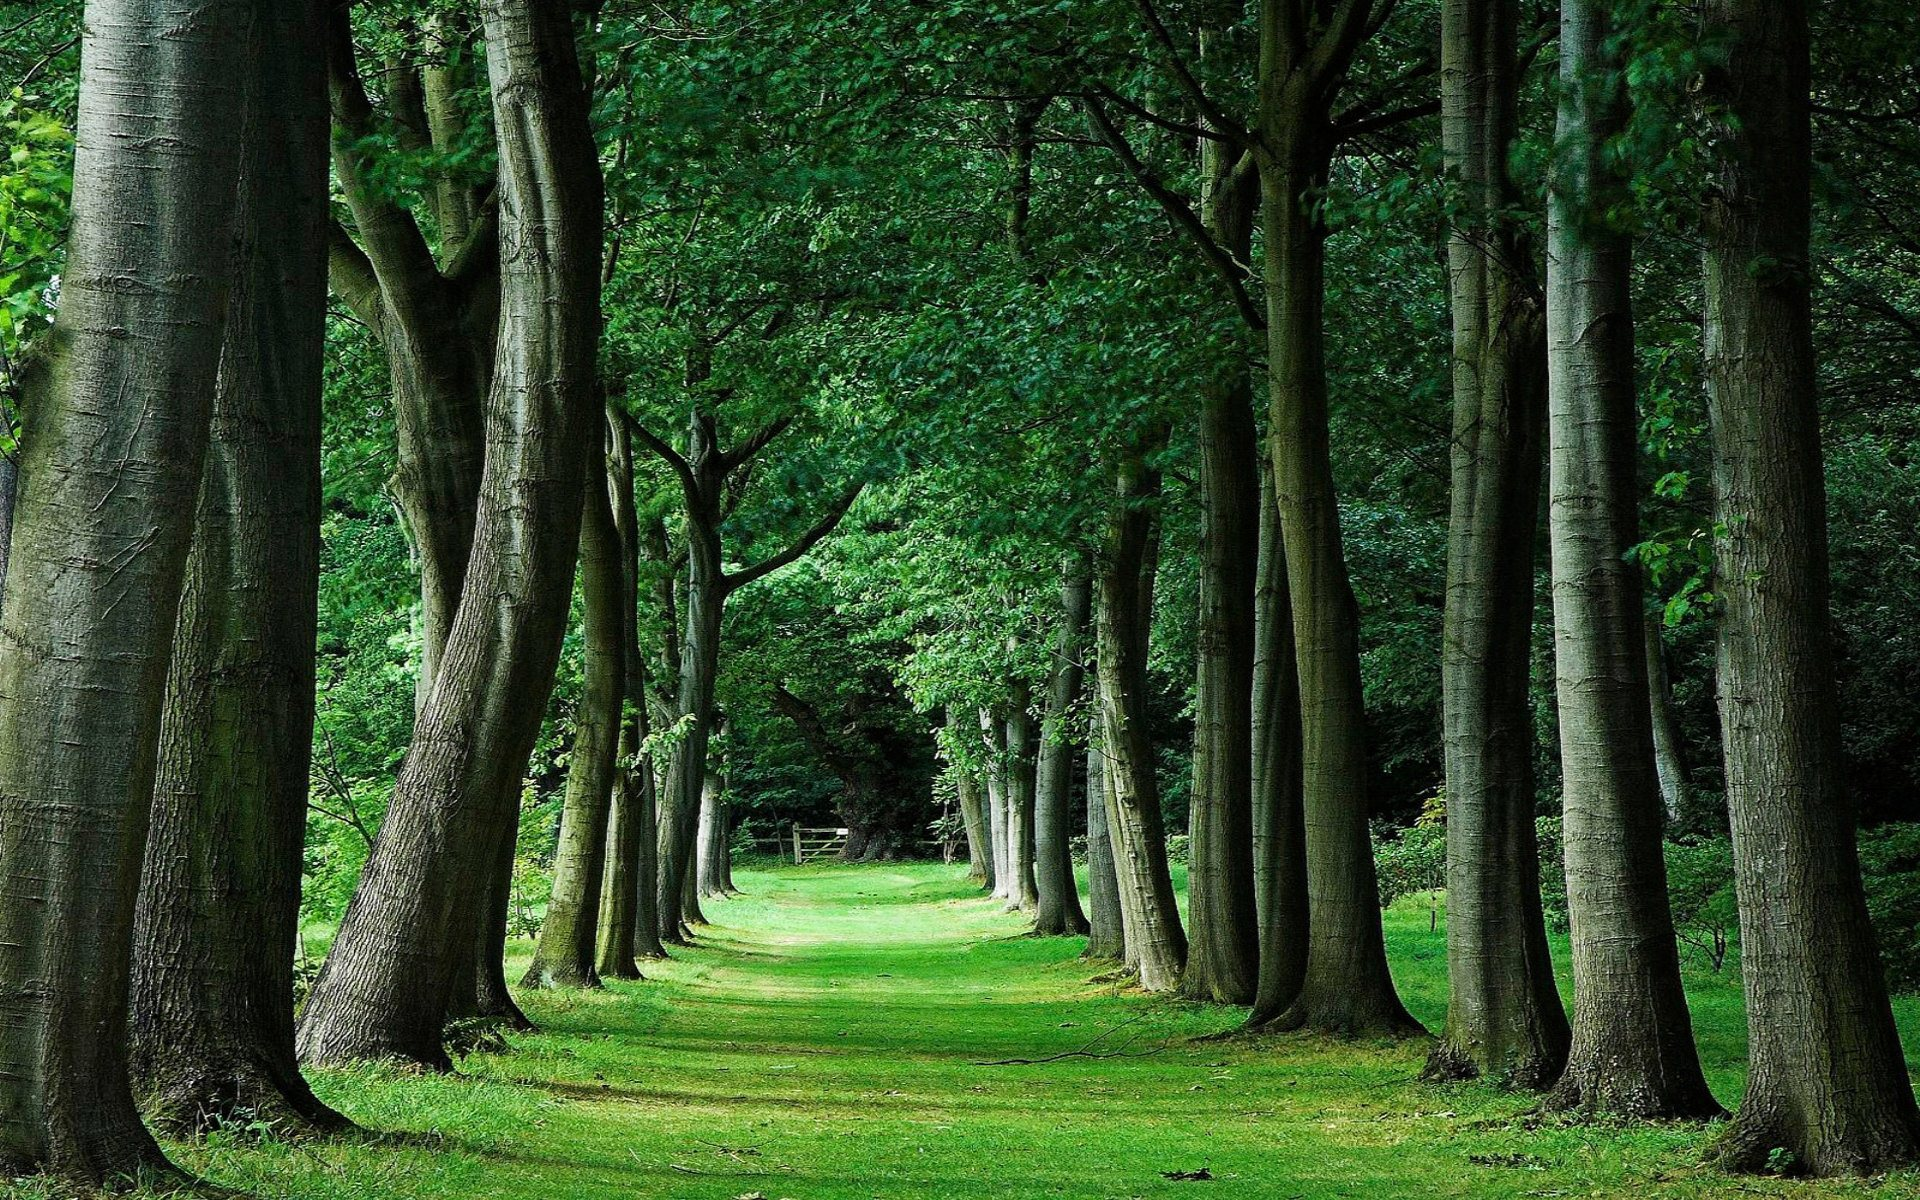 trees areas urban faster weird grow yes rural than pixabay forests protected whether must credit they